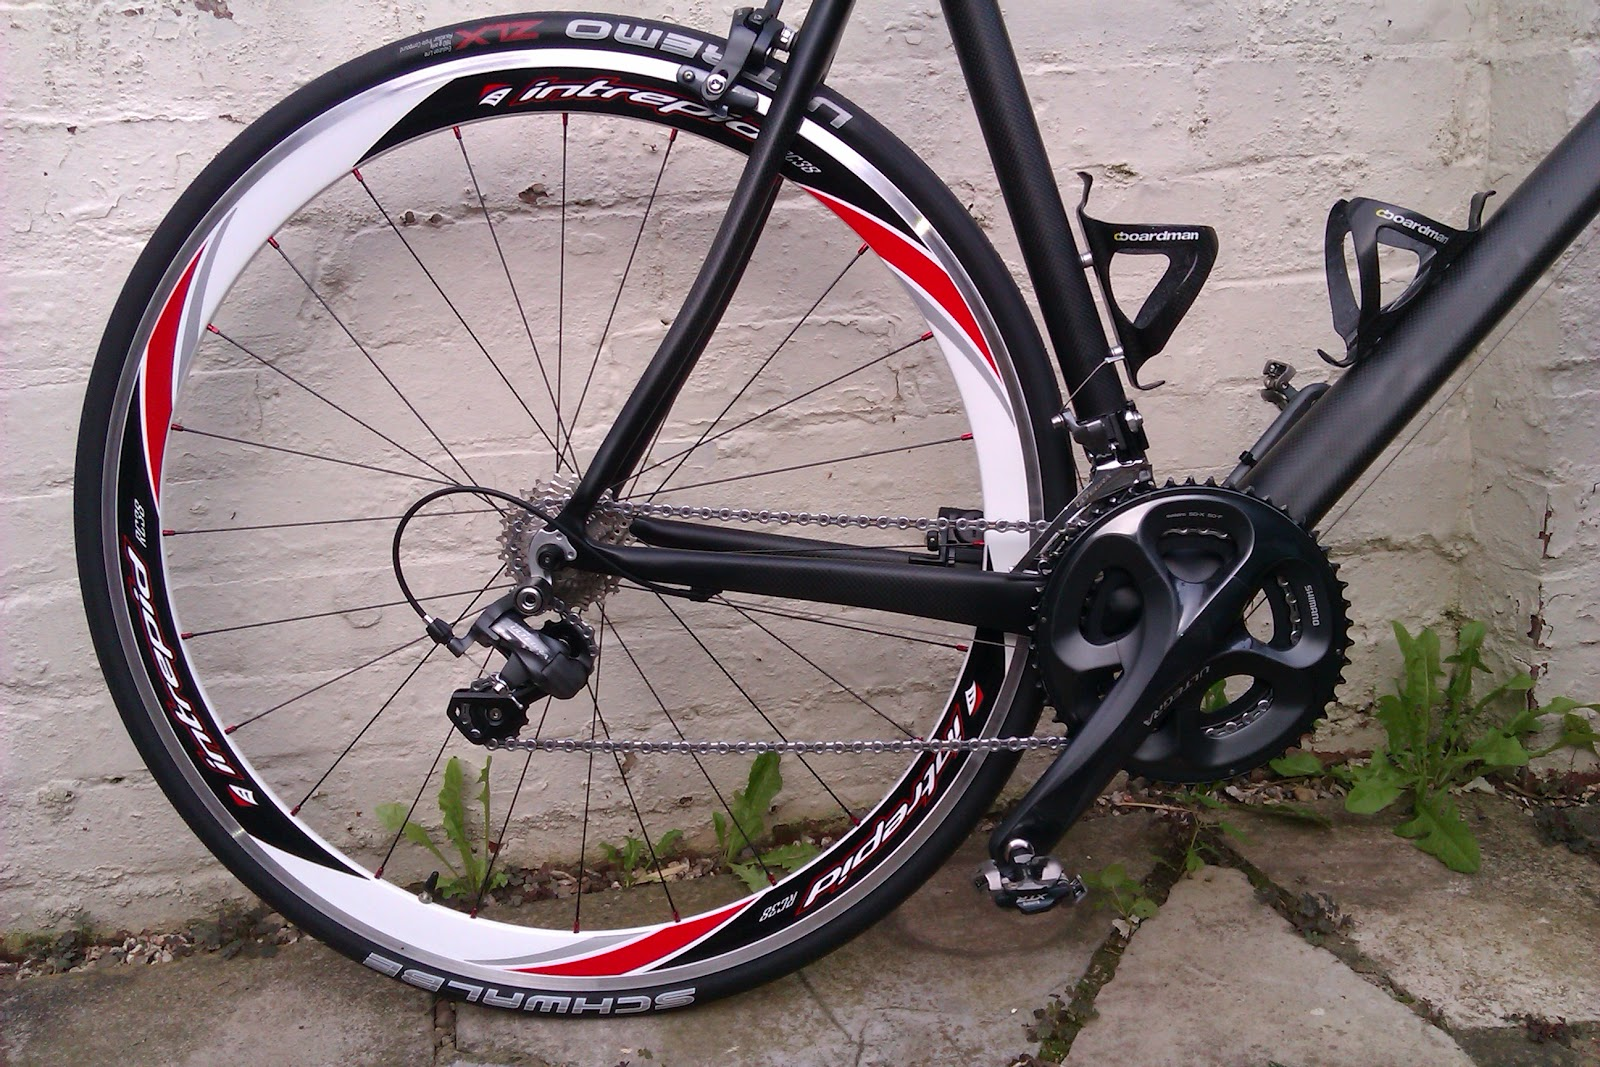 ultegra groupset schwalbe ultremo tyres intrepid wheels what could go wrong